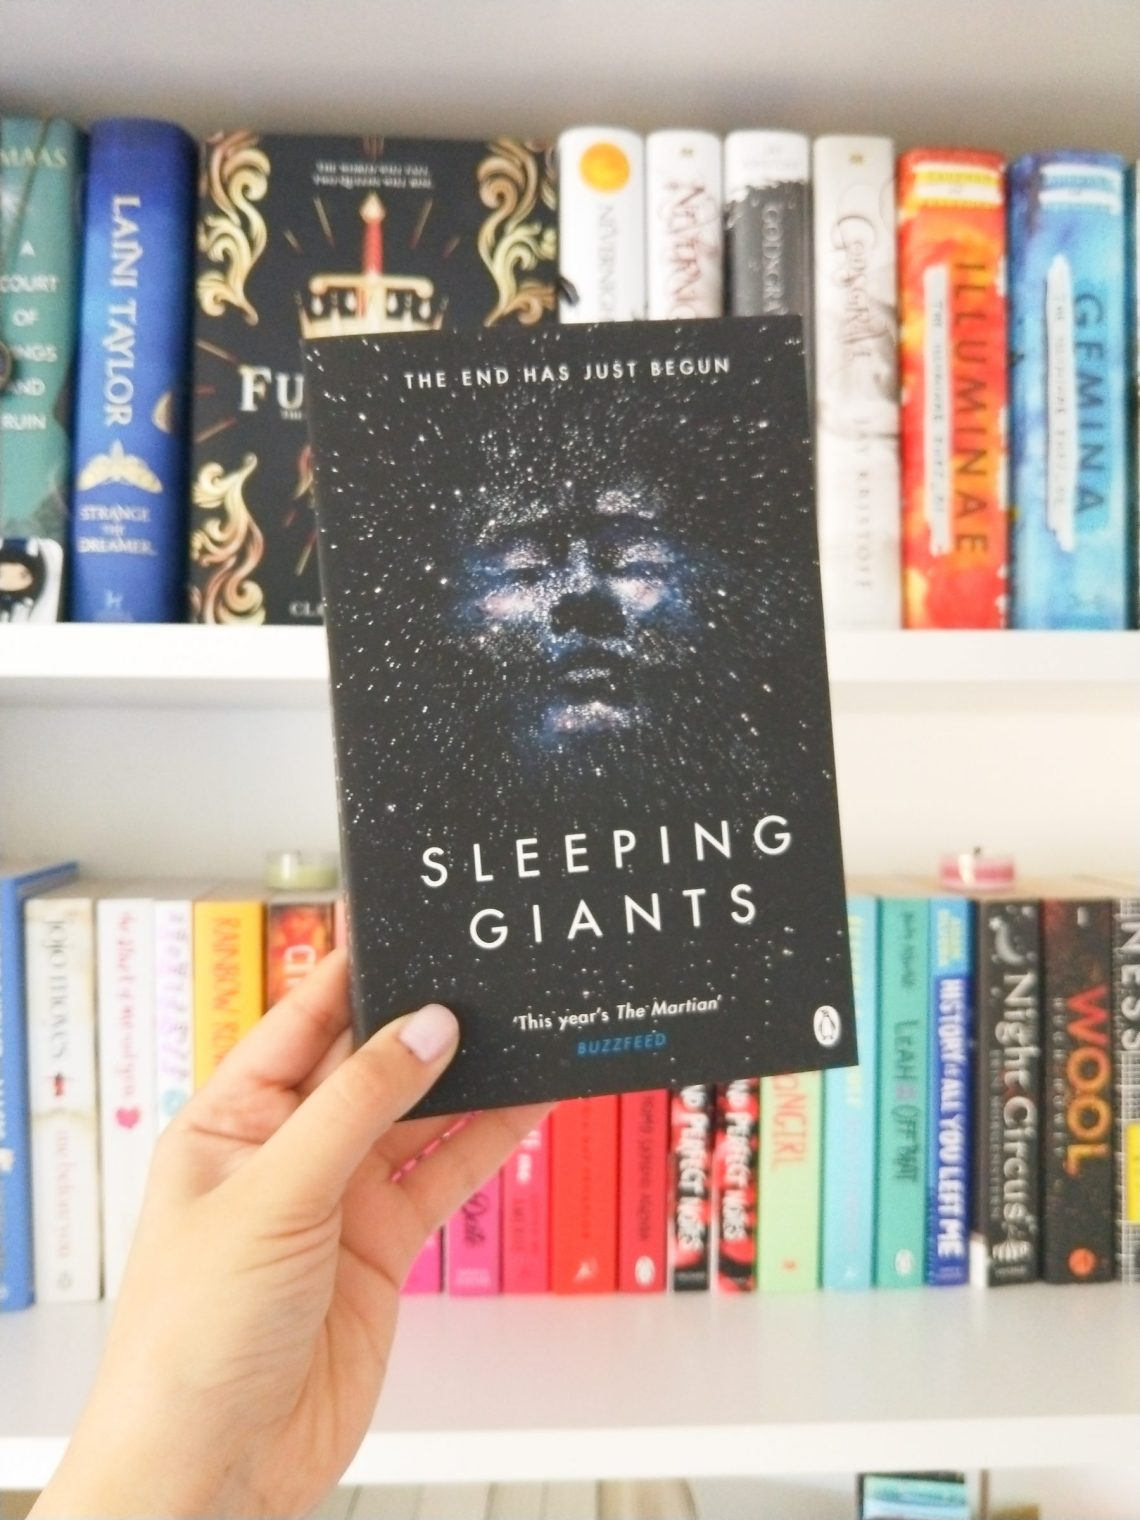 IMG20180621122920 e1533388983482 - Sleeping Giants Book Review